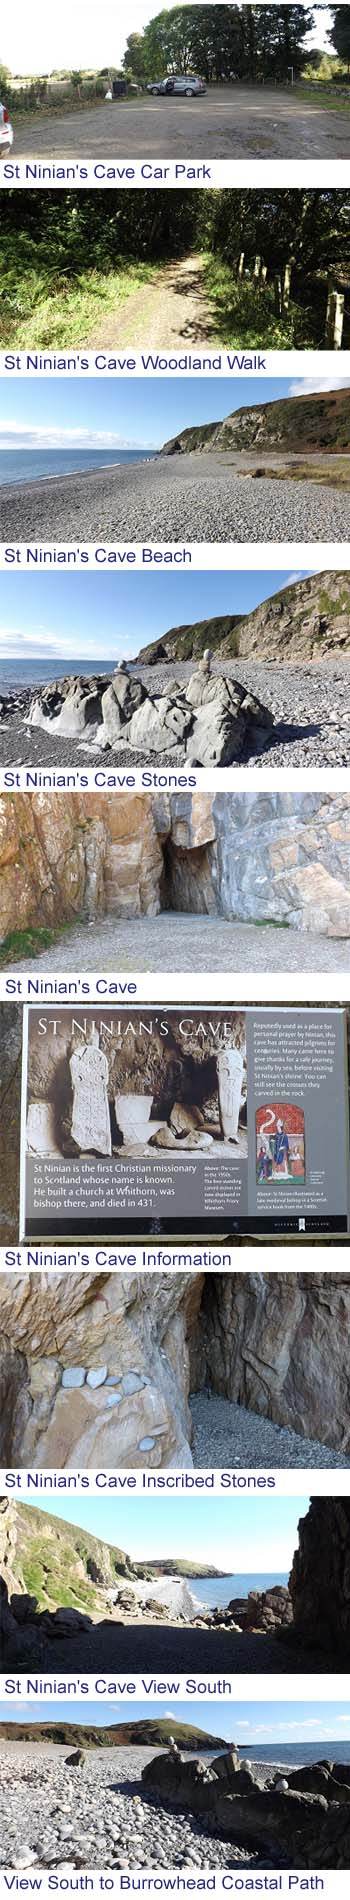 St Ninian's Cave Images